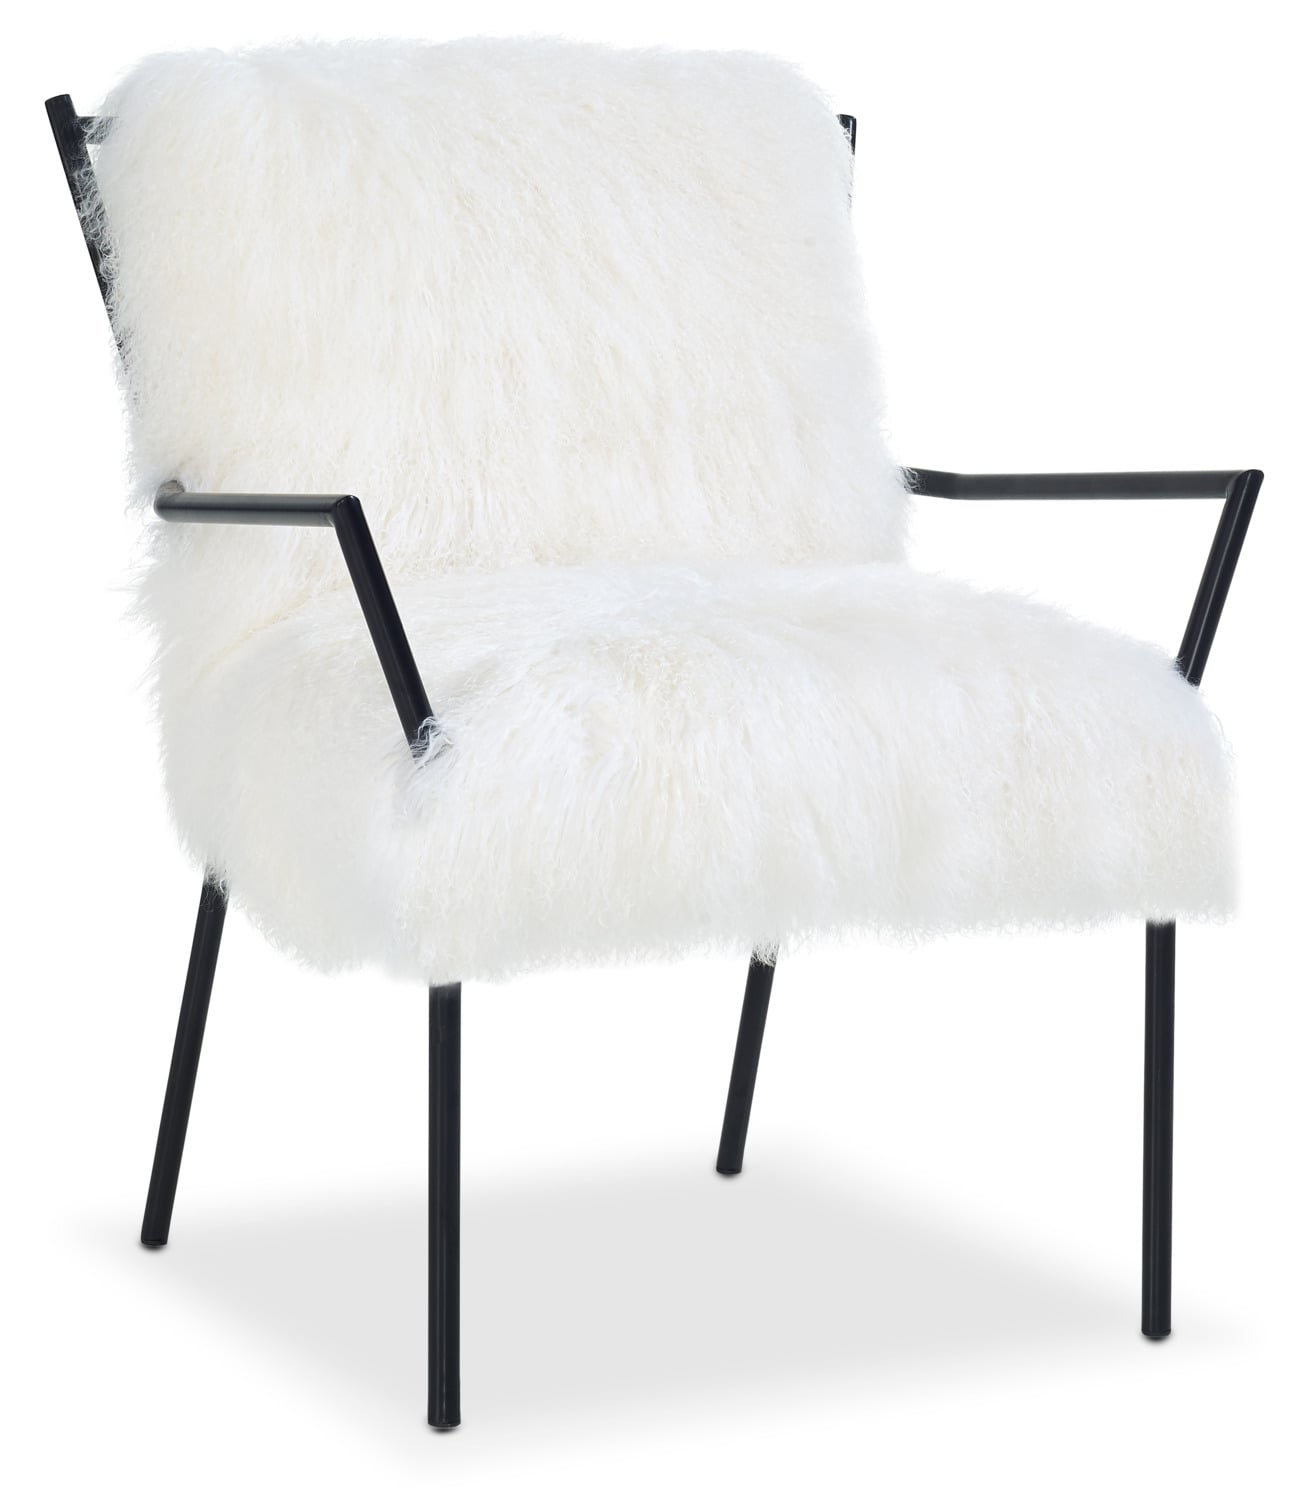 Lara Accent Chair - Black and White